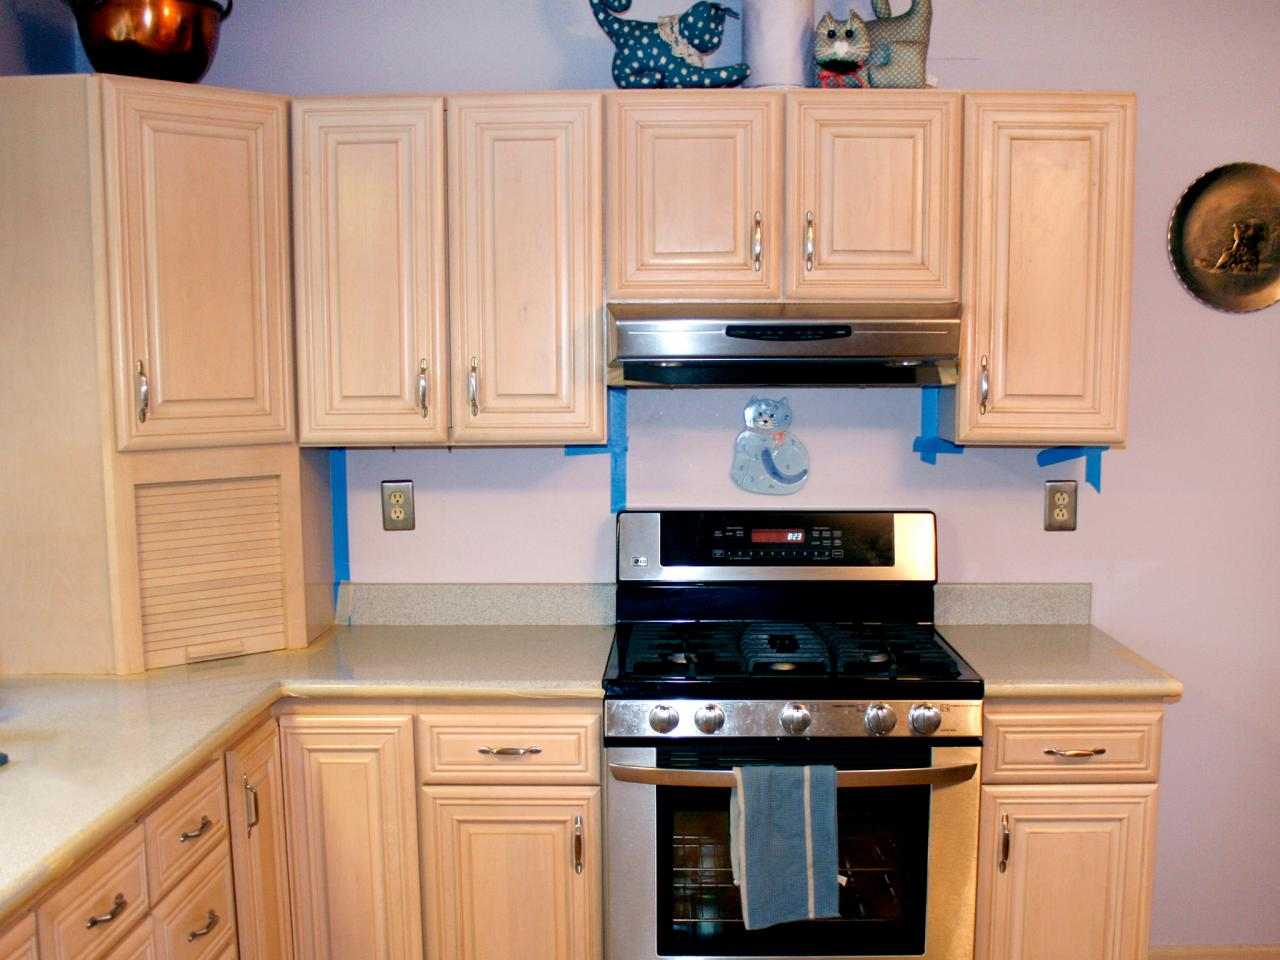 Updating Kitchen Cabinets Ideas & Tips From